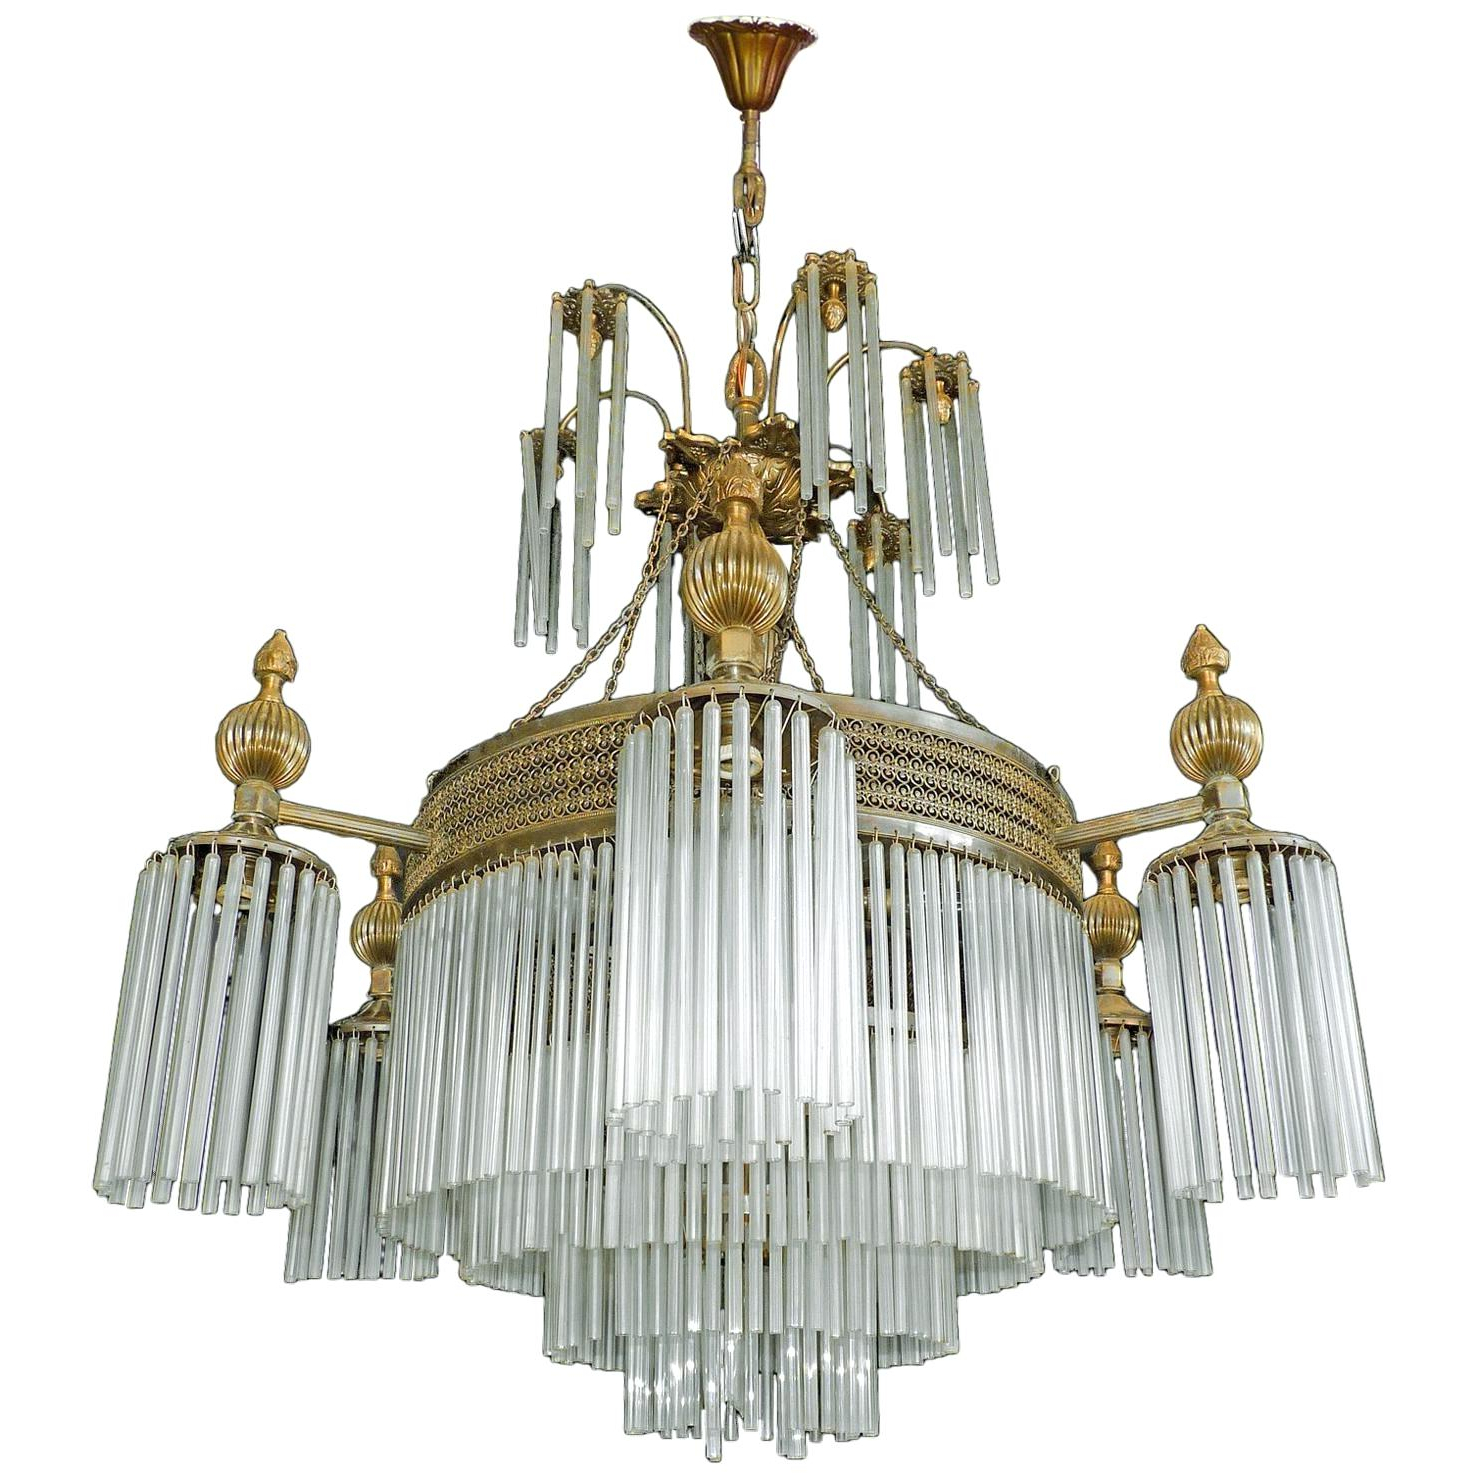 12 Light Chandelier Pertaining To Current Vroman 12 Light Sputnik Chandeliers (View 1 of 25)